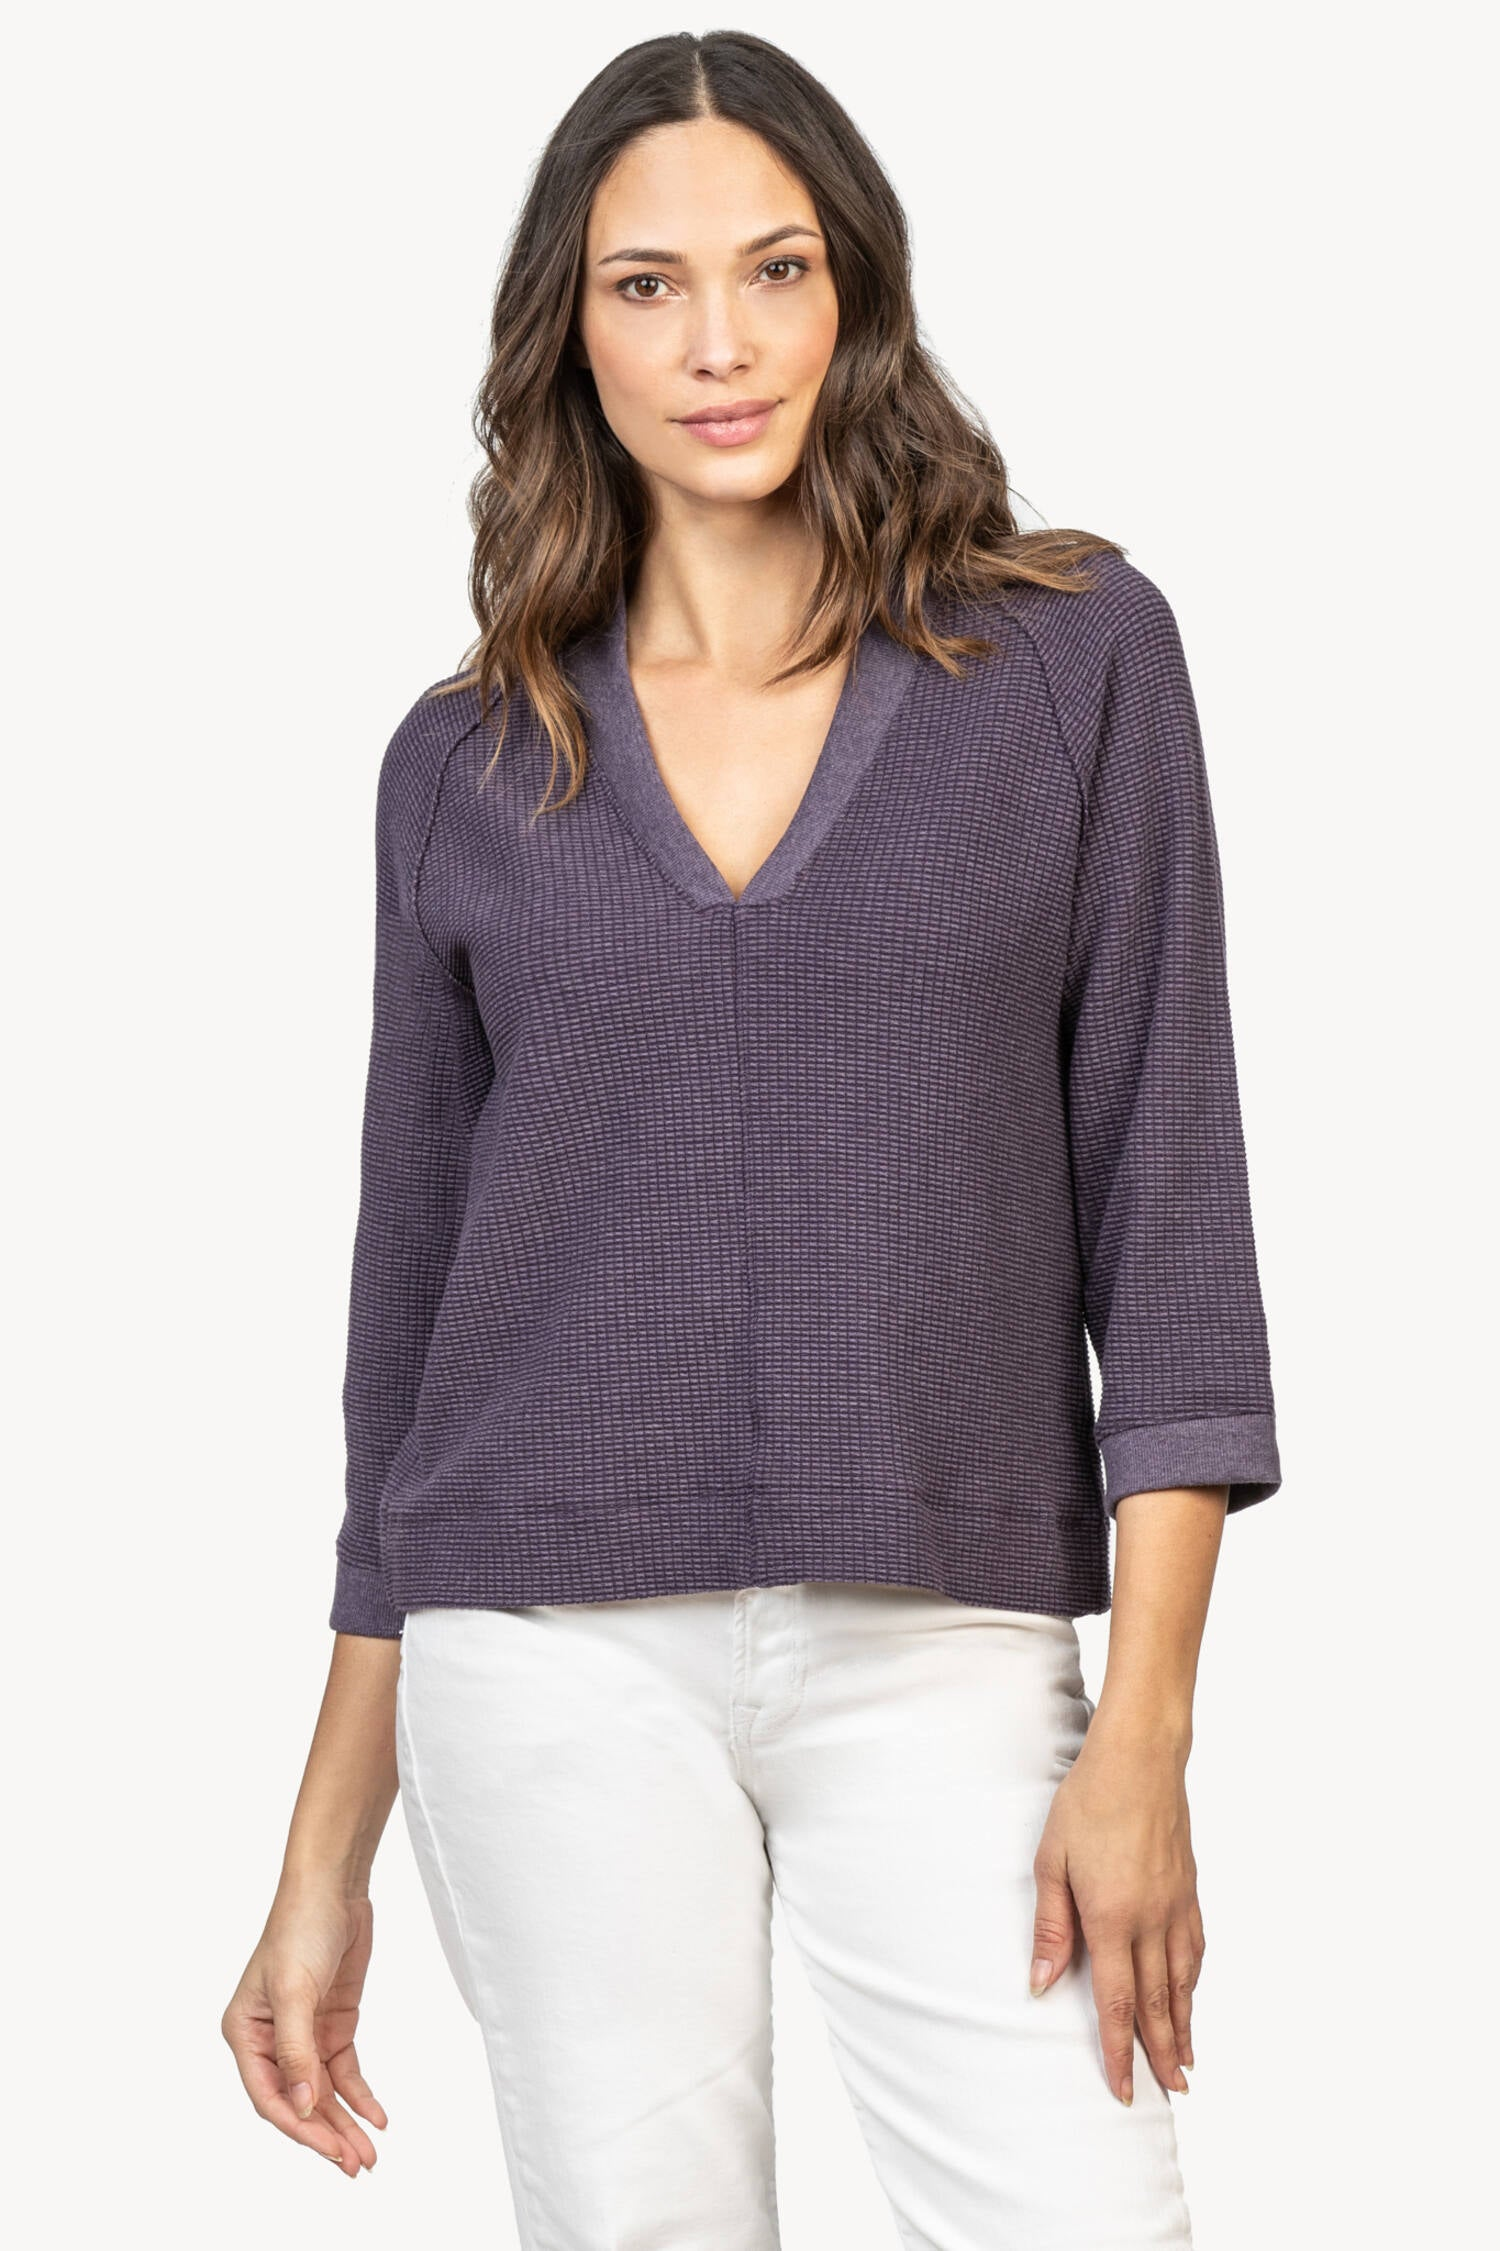 Waffle V Neck in Aubergine